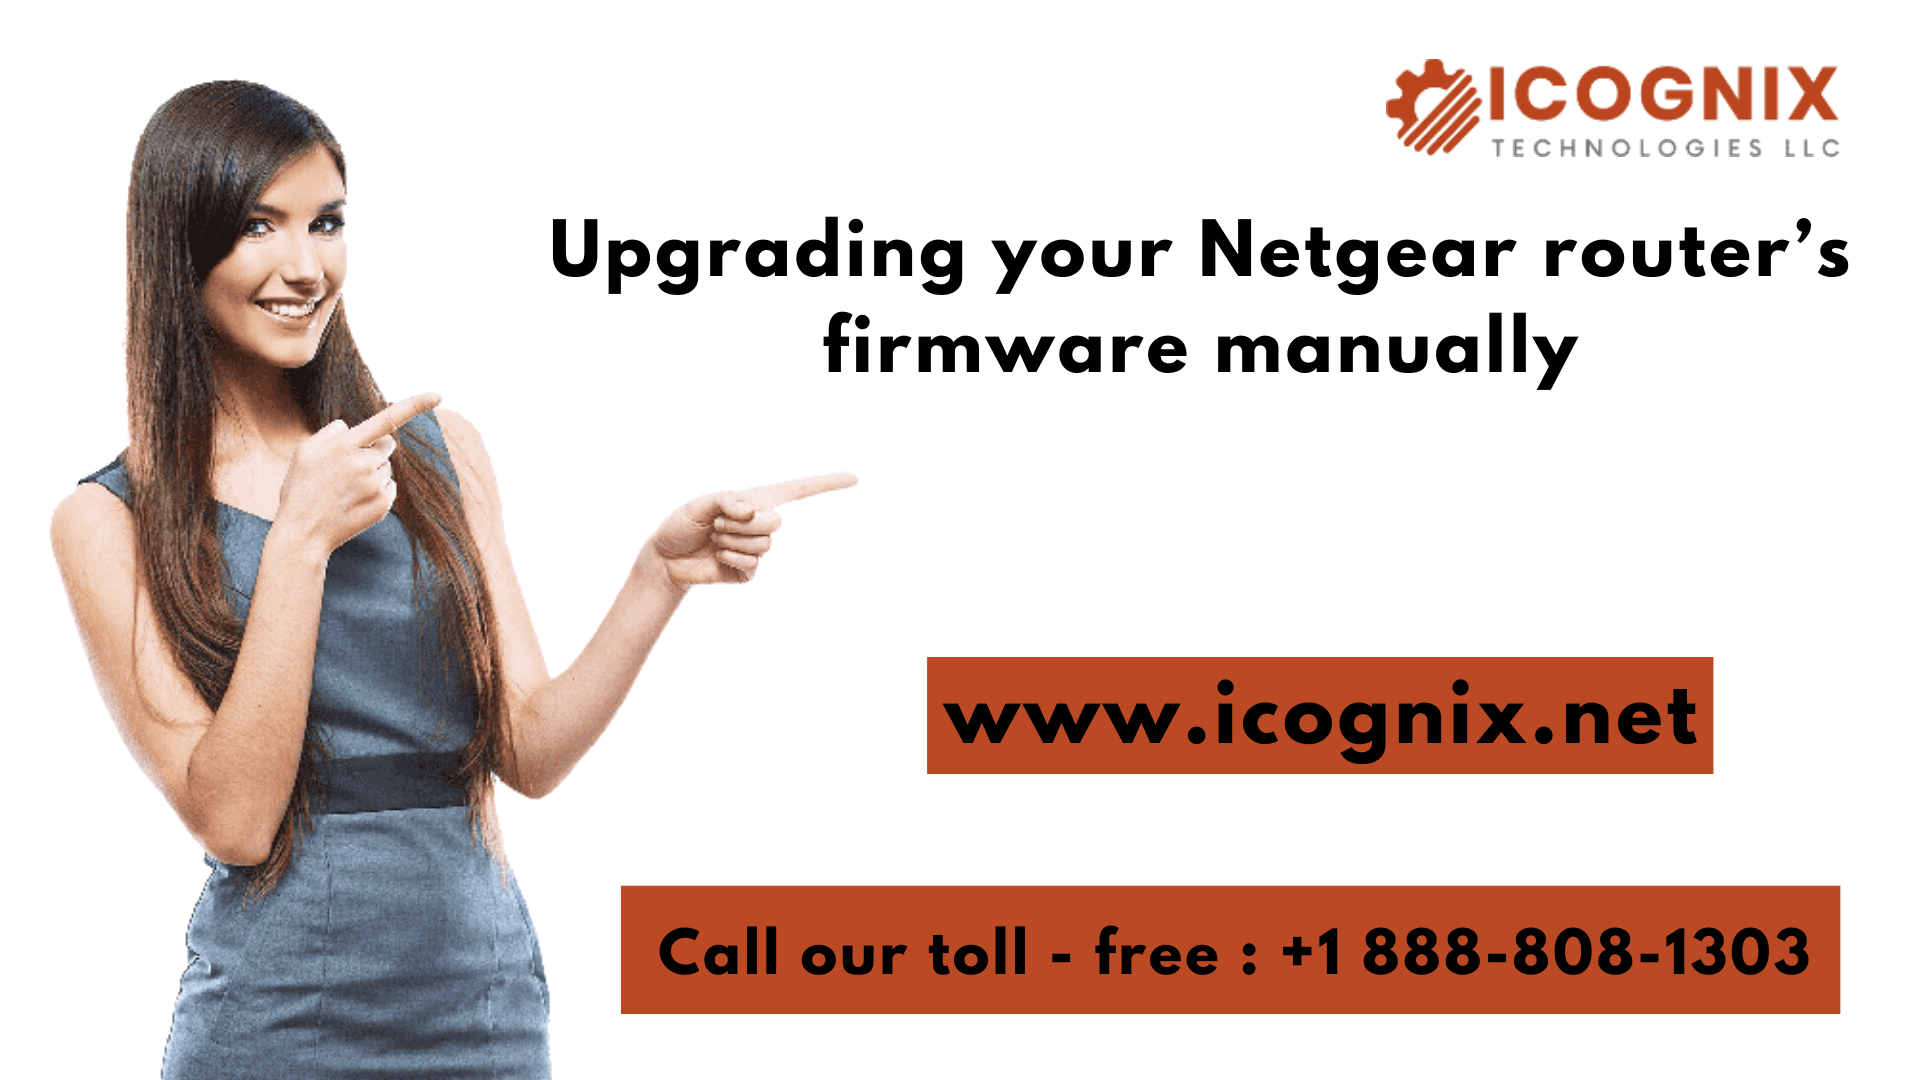 Upgrading your Netgear router's firmware manually